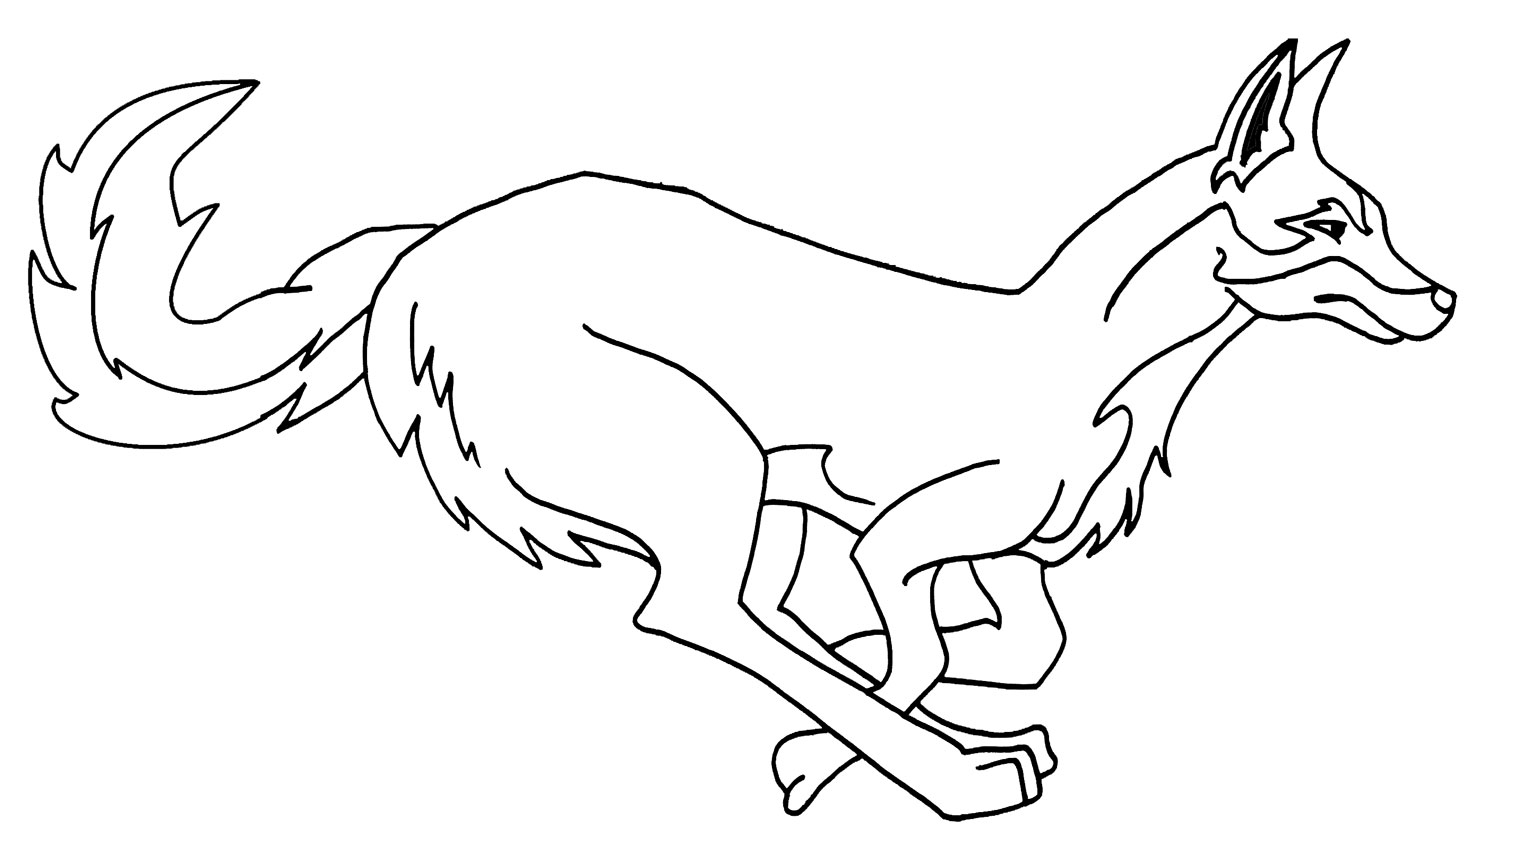 Coyote coloring #9, Download drawings